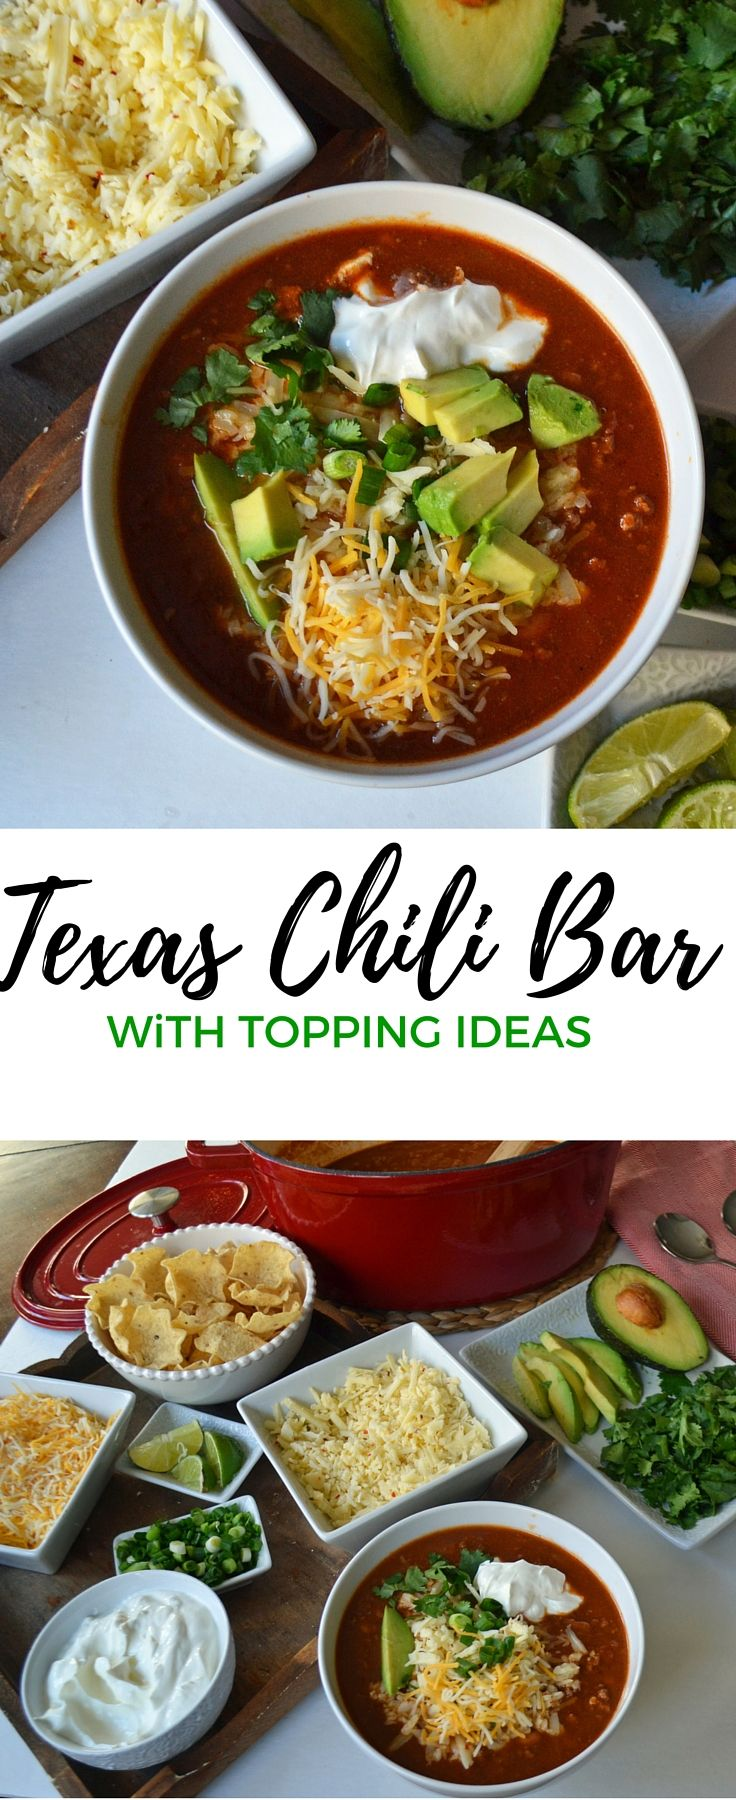 17 best ideas about chili bar on pinterest chili bar for Bar food ideas recipes